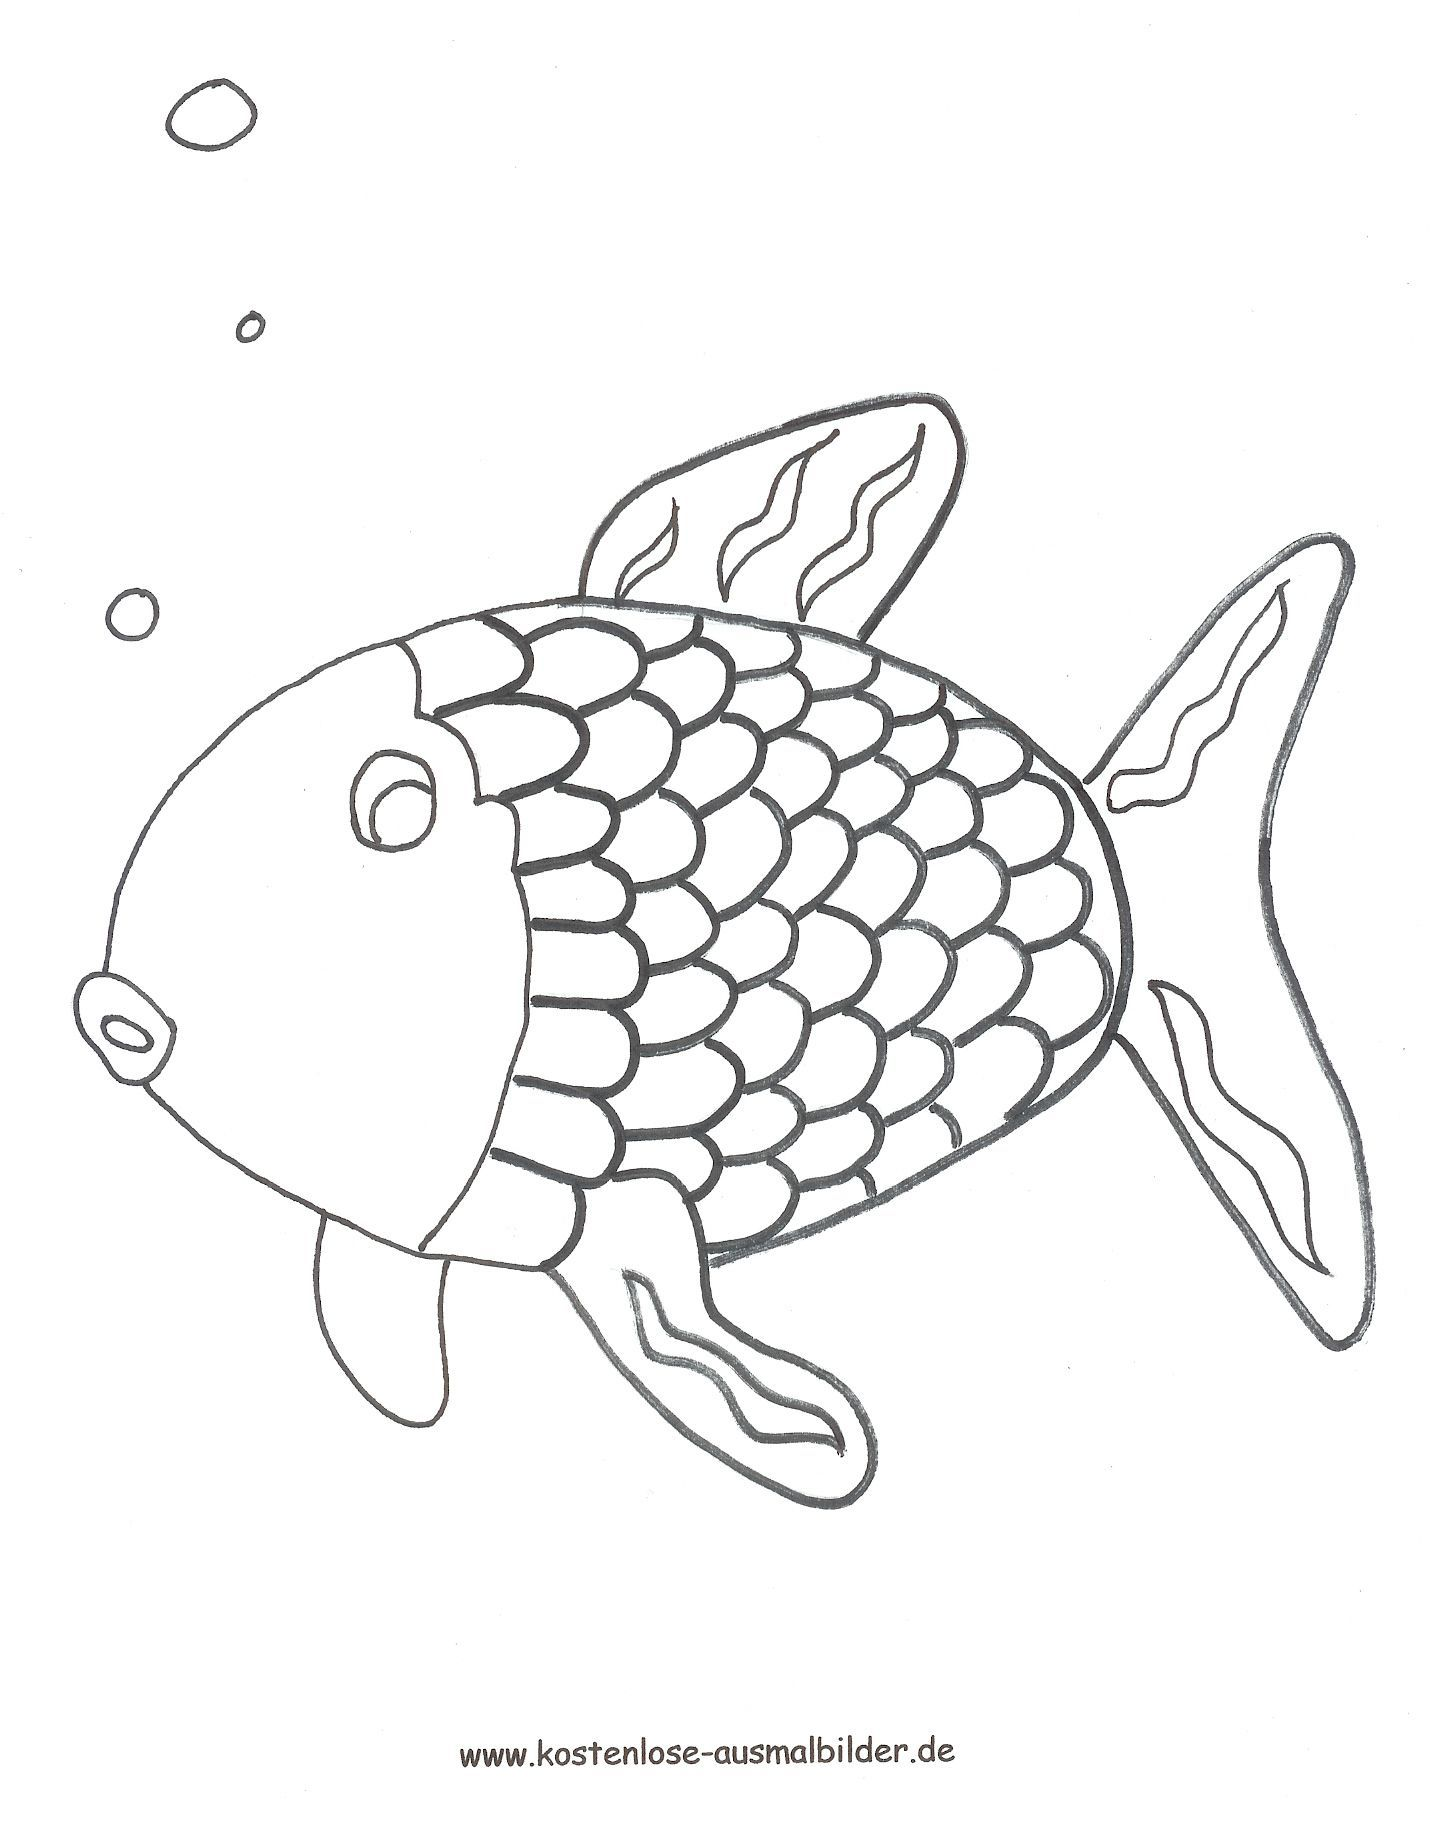 Rainbow fish coloring page - Rainbow fish coloring page